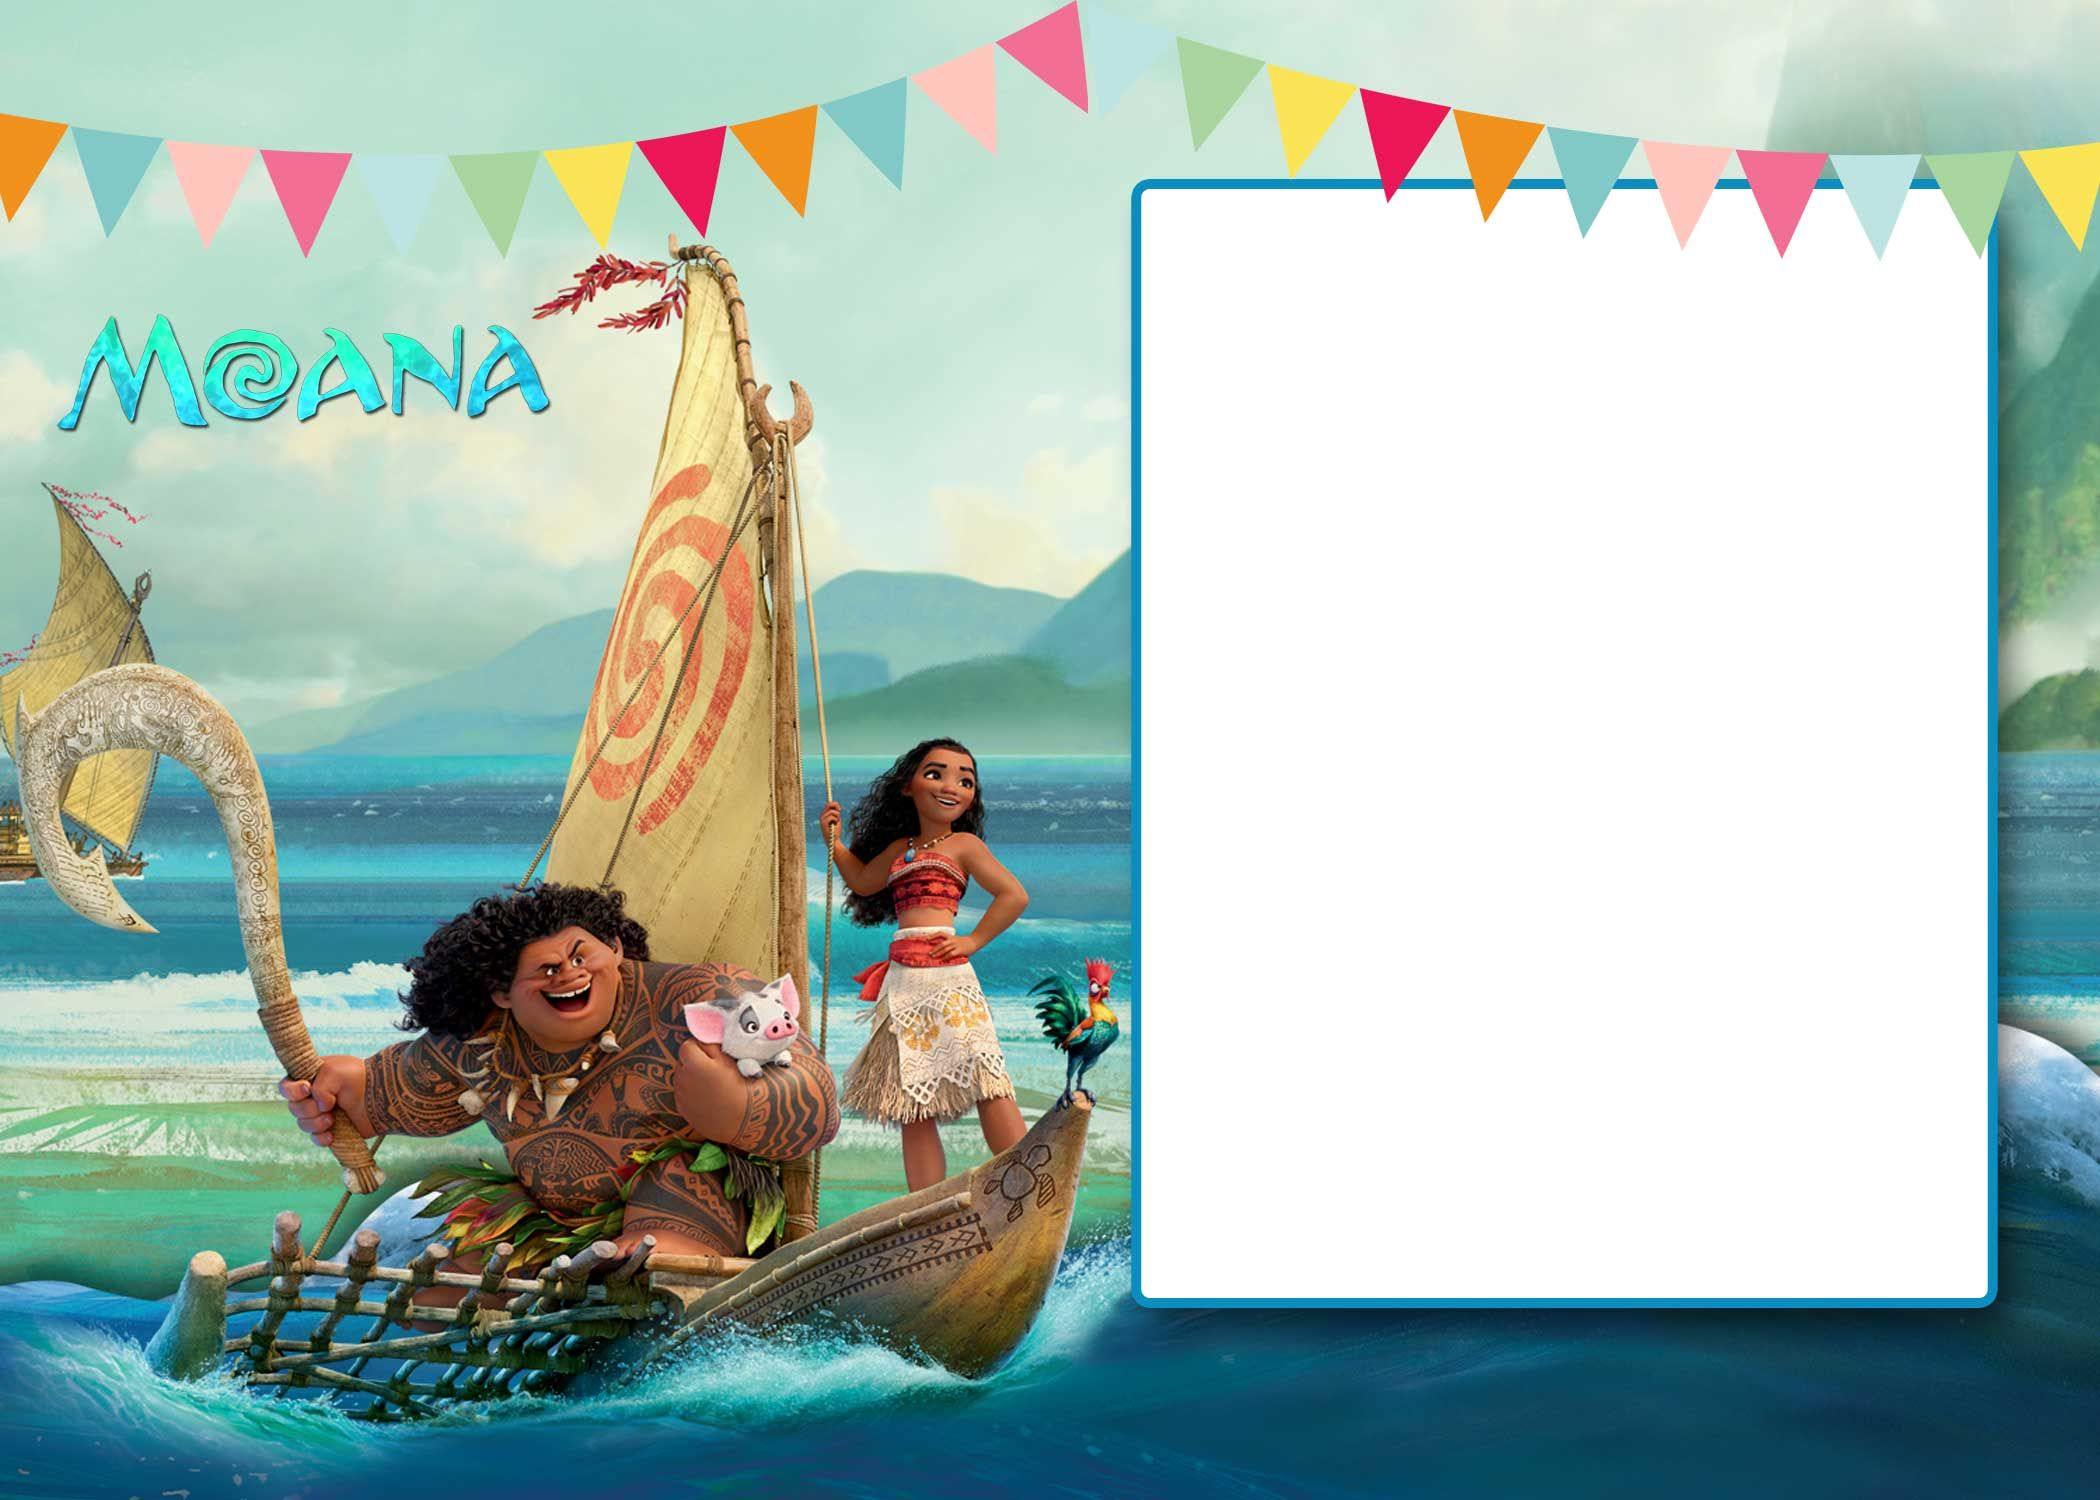 image about Moana Printable Invitations titled Cost-free Free of charge Printable Moana 1st Invitation Template Bagvania